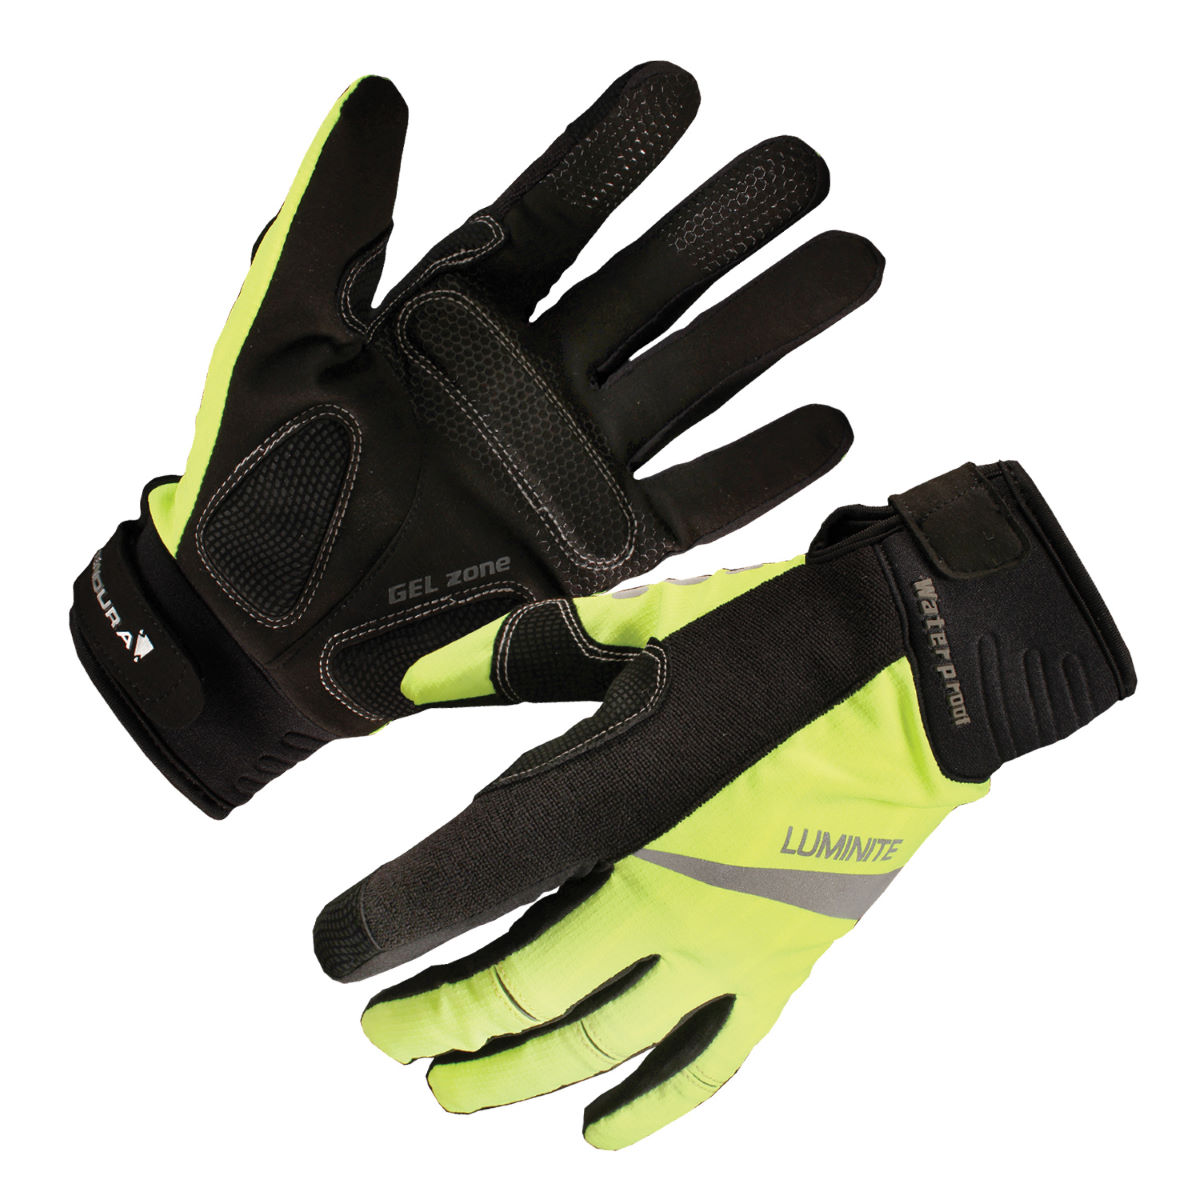 Endura Luminite Glove - Small Yellow | Winter Gloves